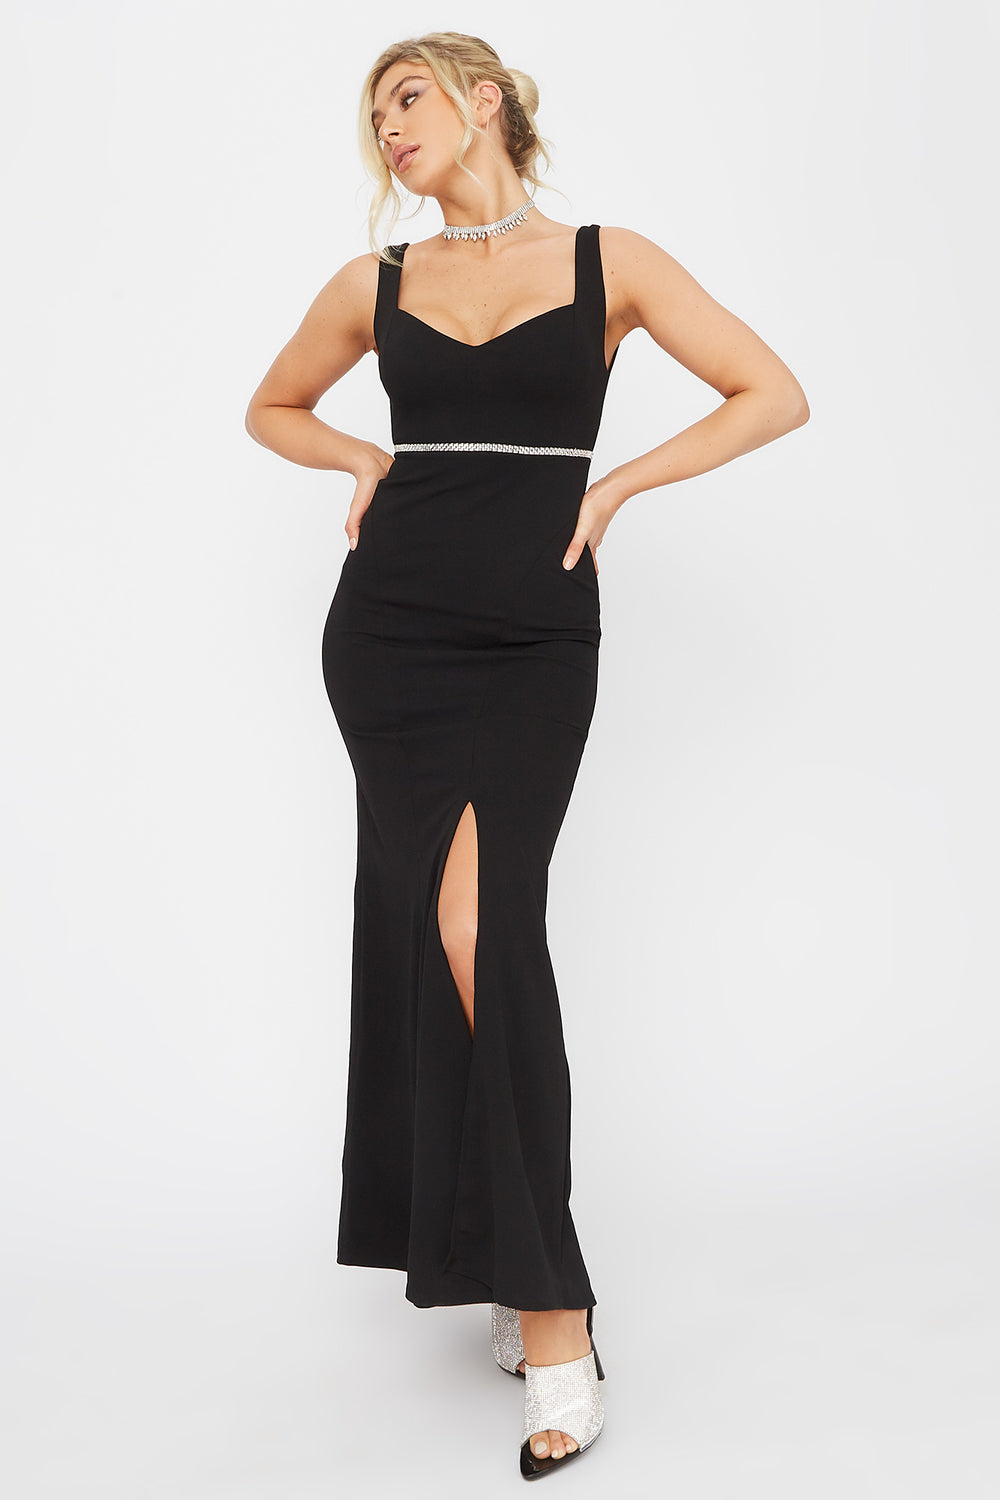 Rhinestone Belt Sweetheart Neck Maxi Dress Black